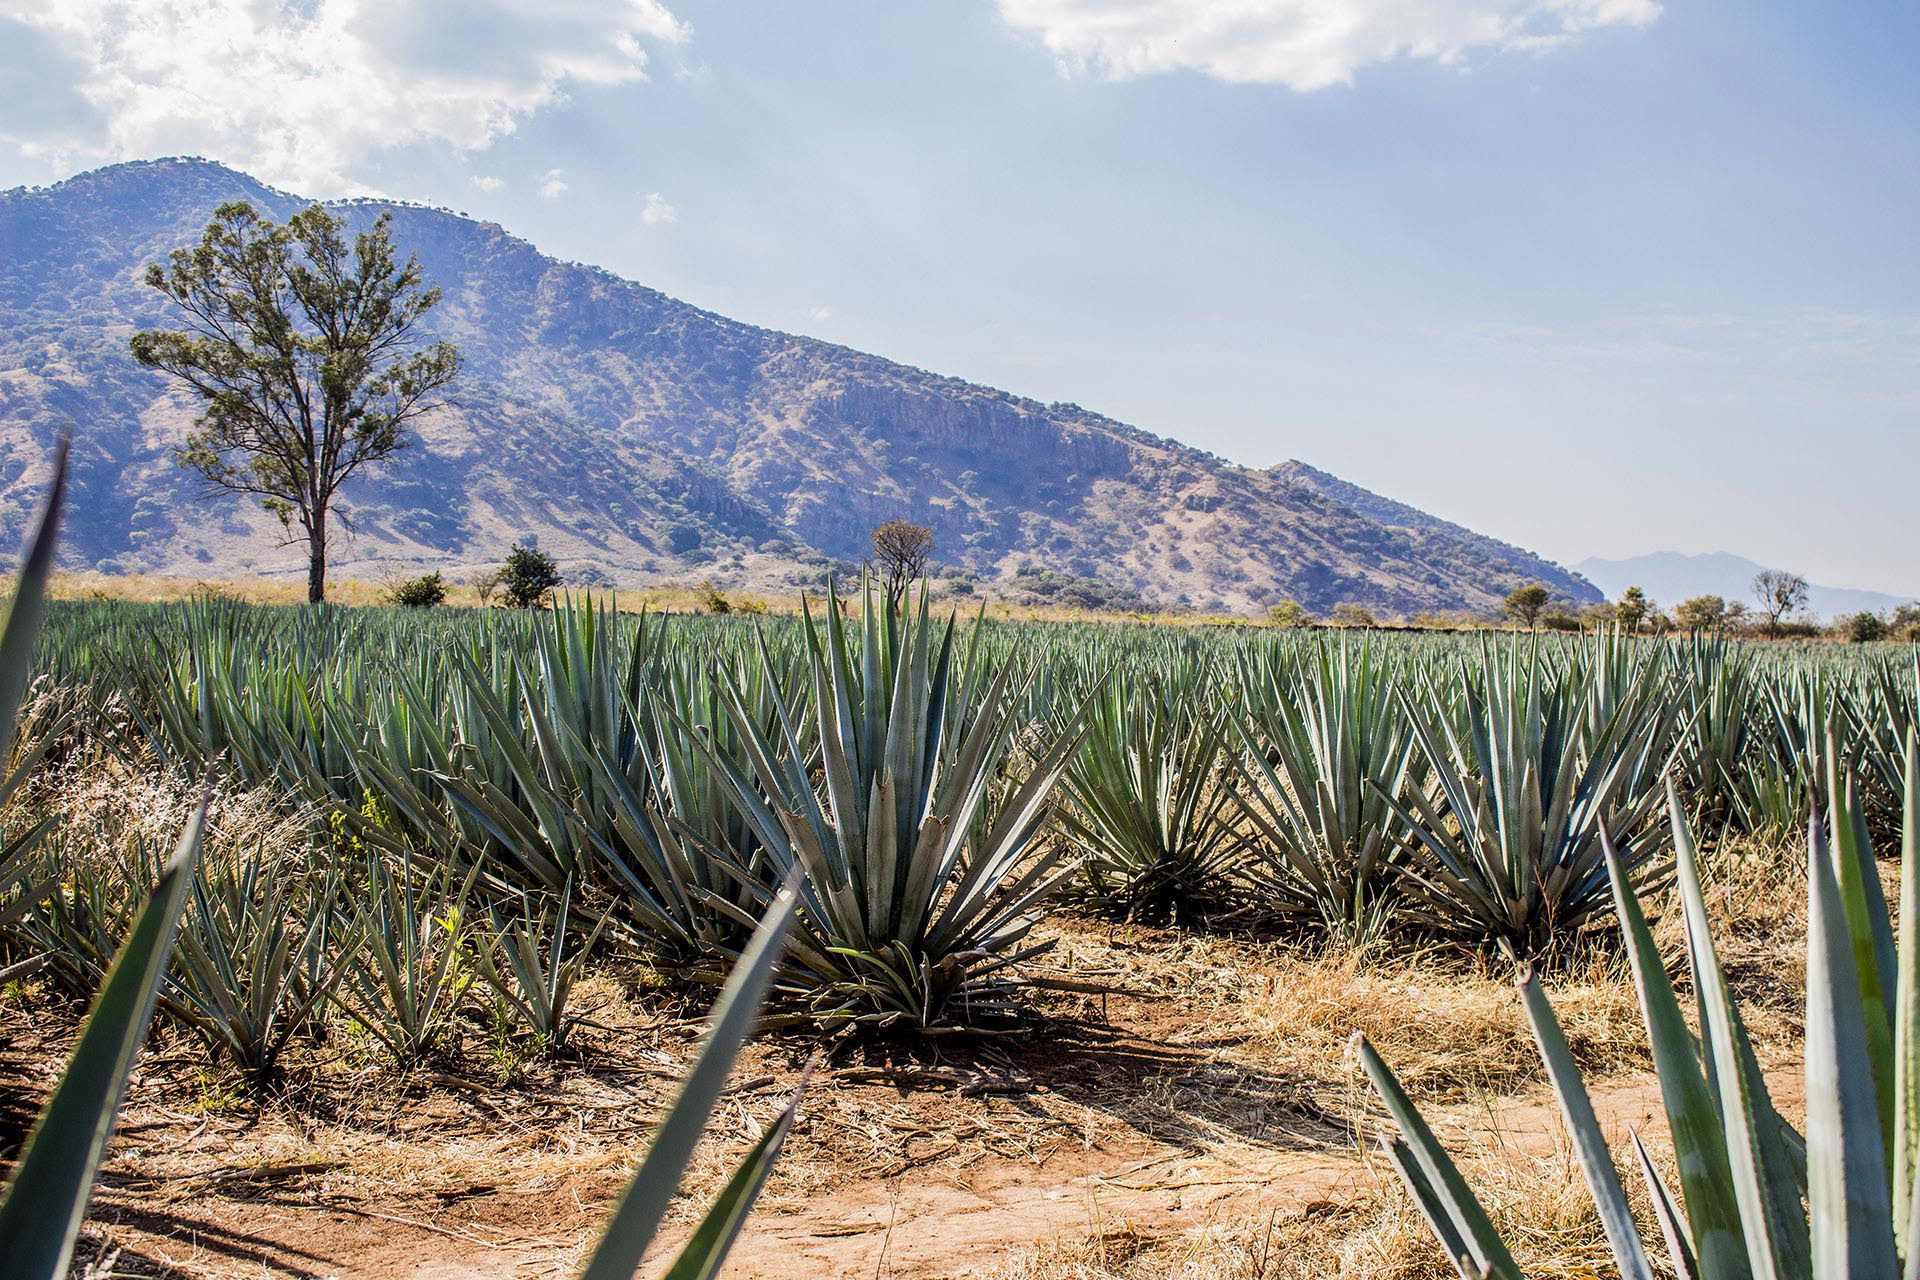 Blue agave waiting to be harvested in Jalisco, Mexico / Getty